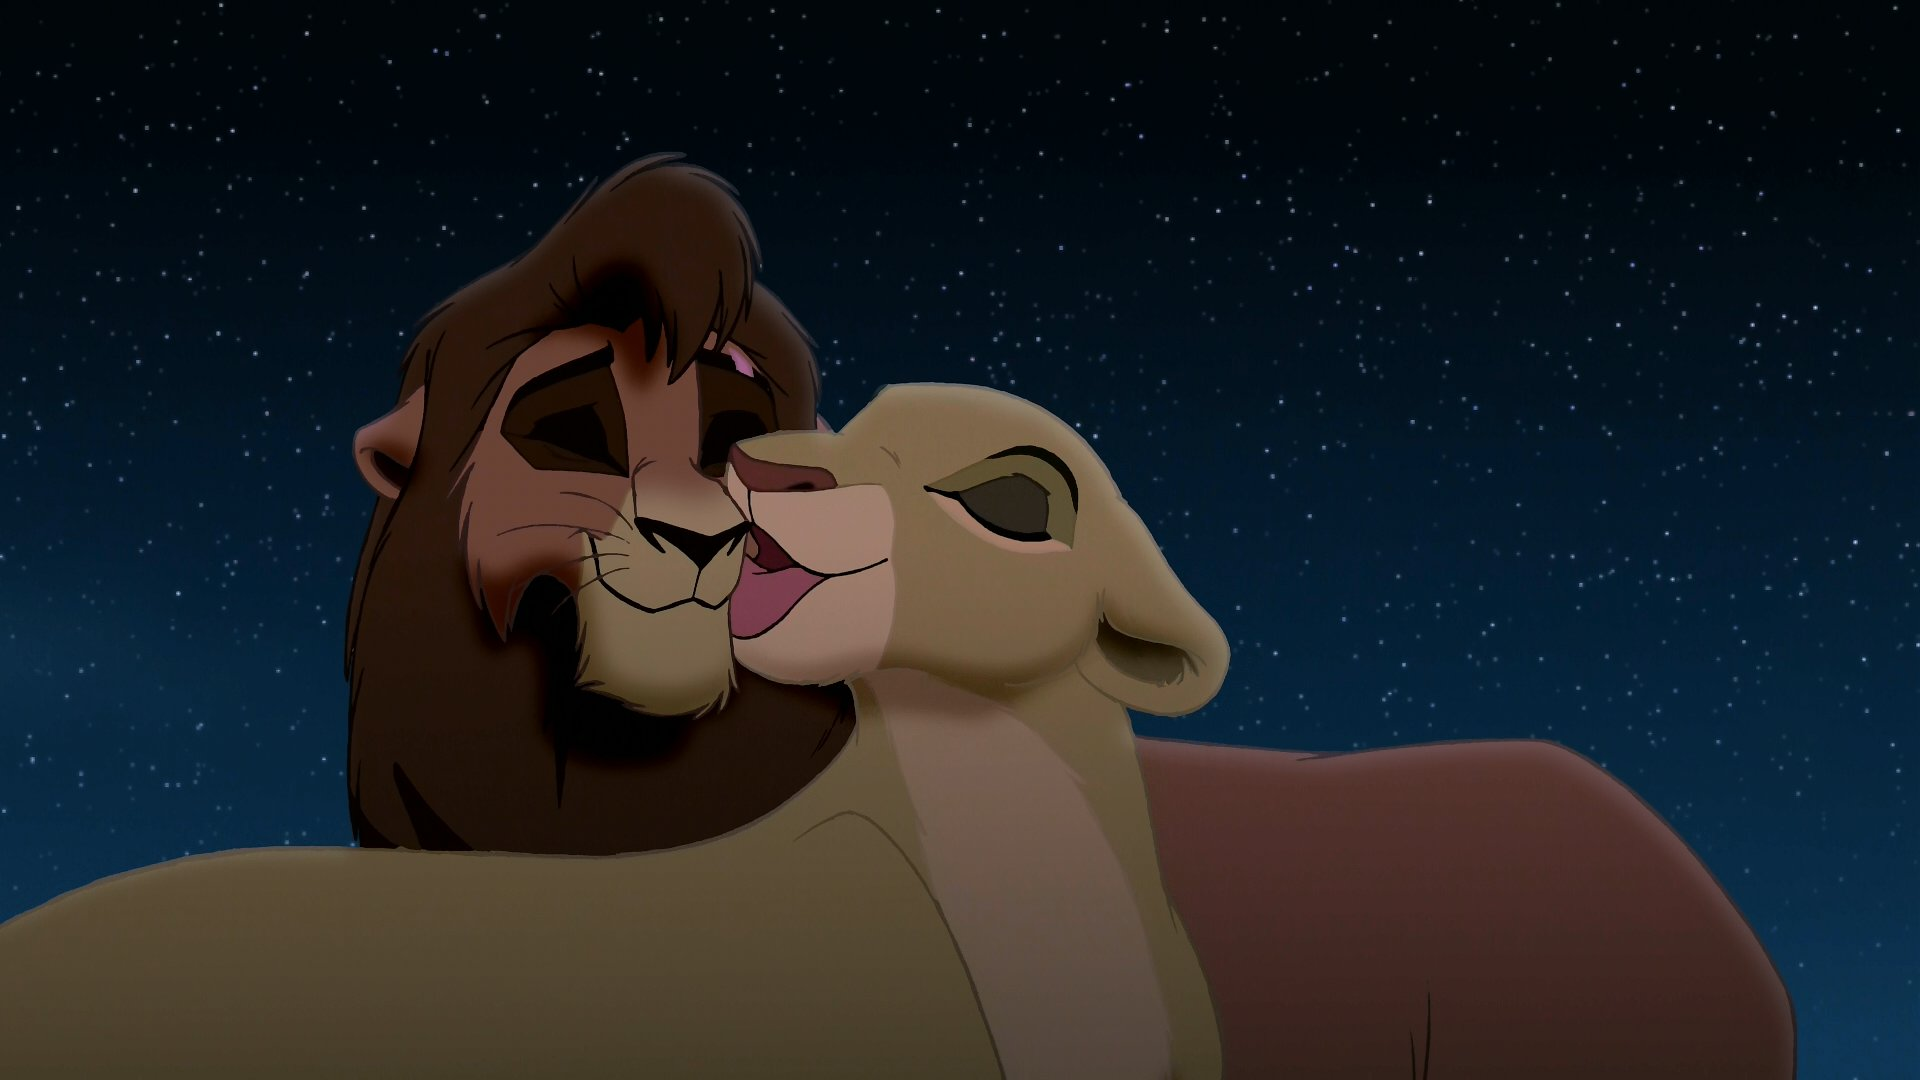 The Lion King 2 Simba s Pride Kovu and kiaraLion King 2 Kiara And Kovu Love Song